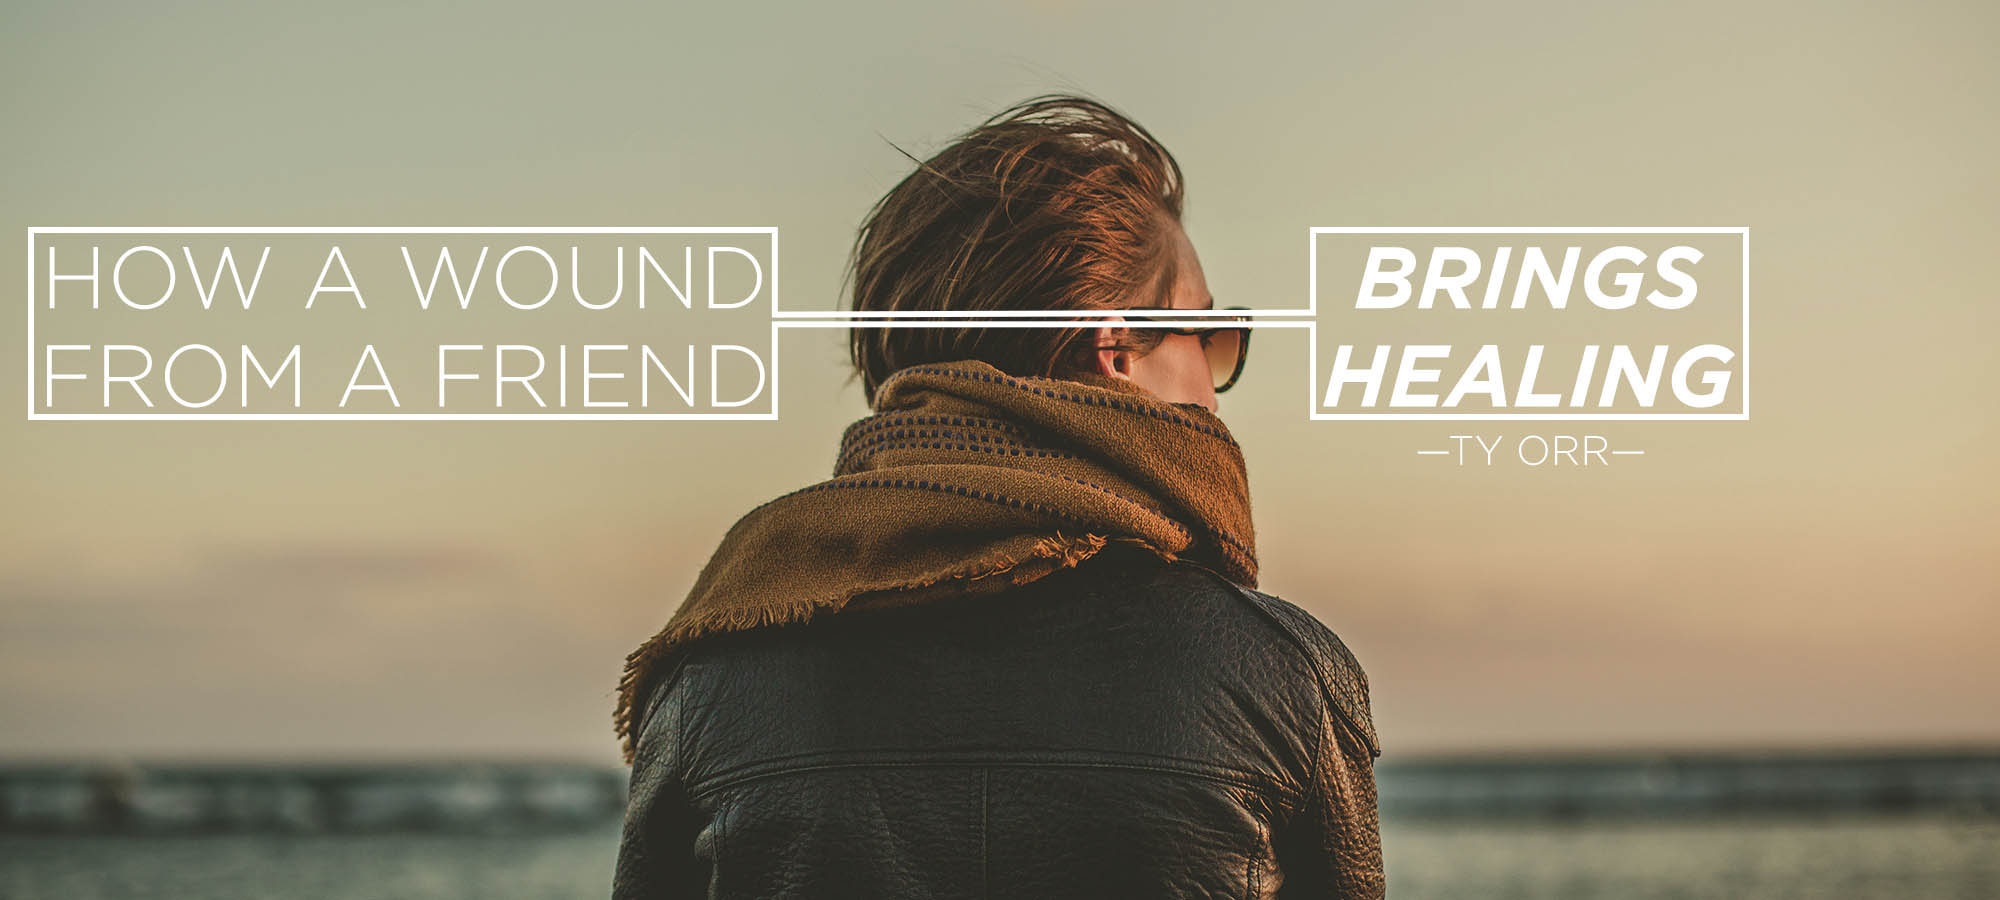 How a Wound from a Friend Brings Healing